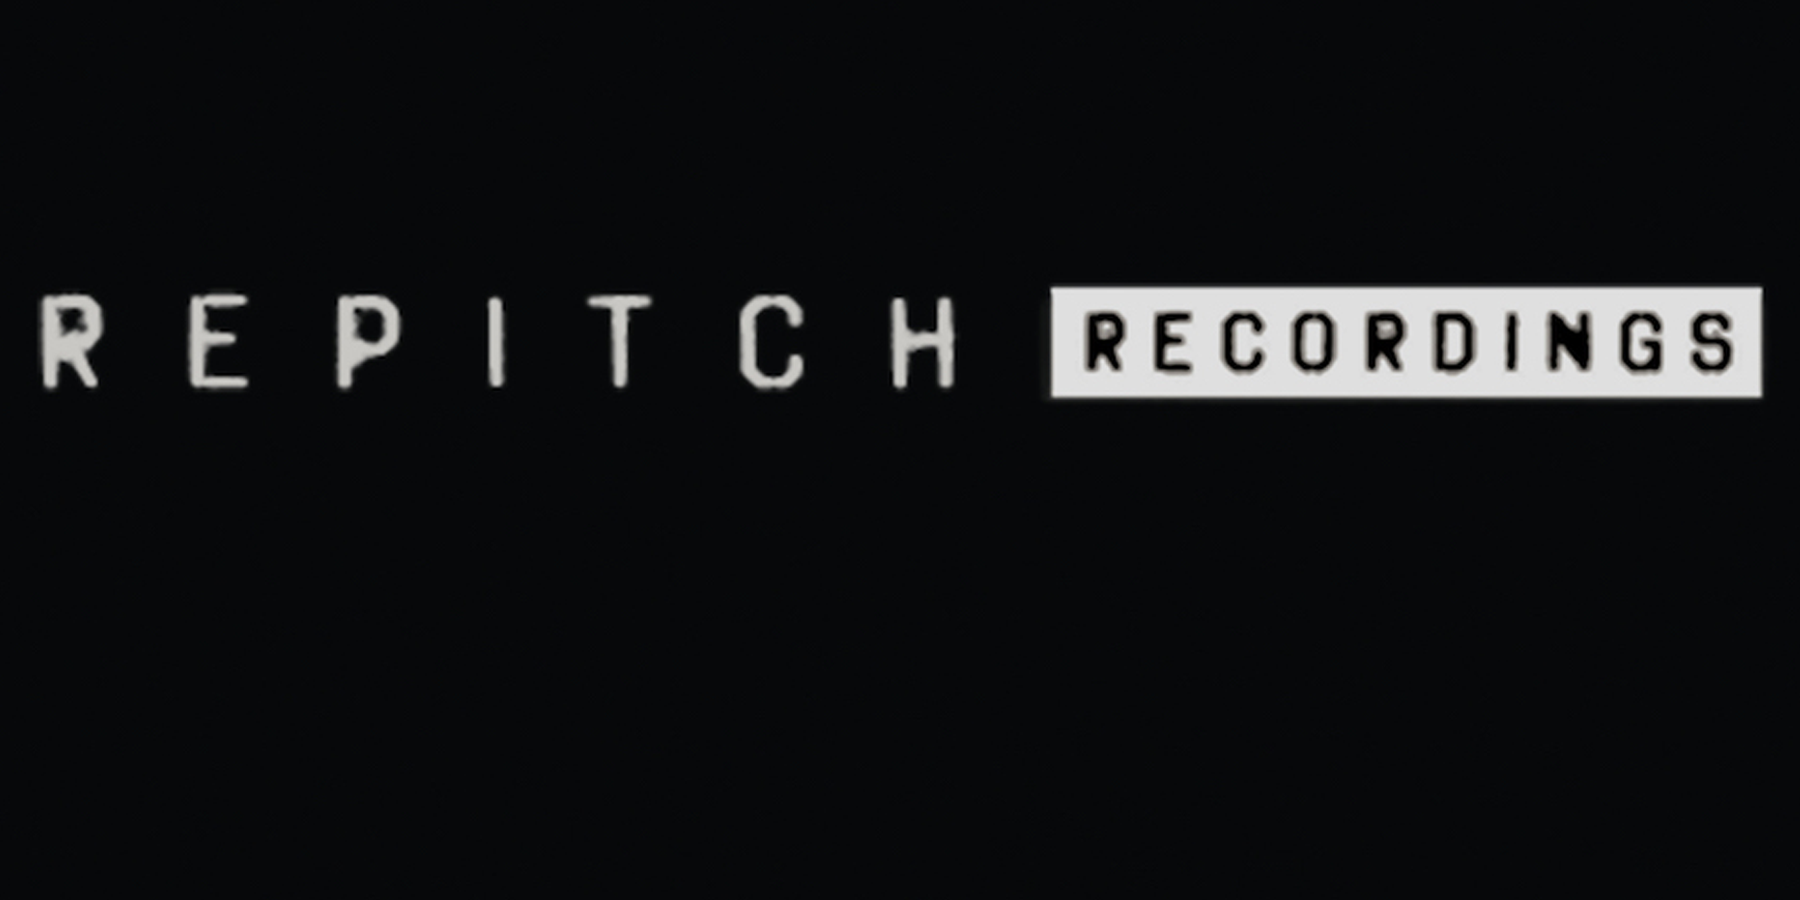 repitch-recordings-logo